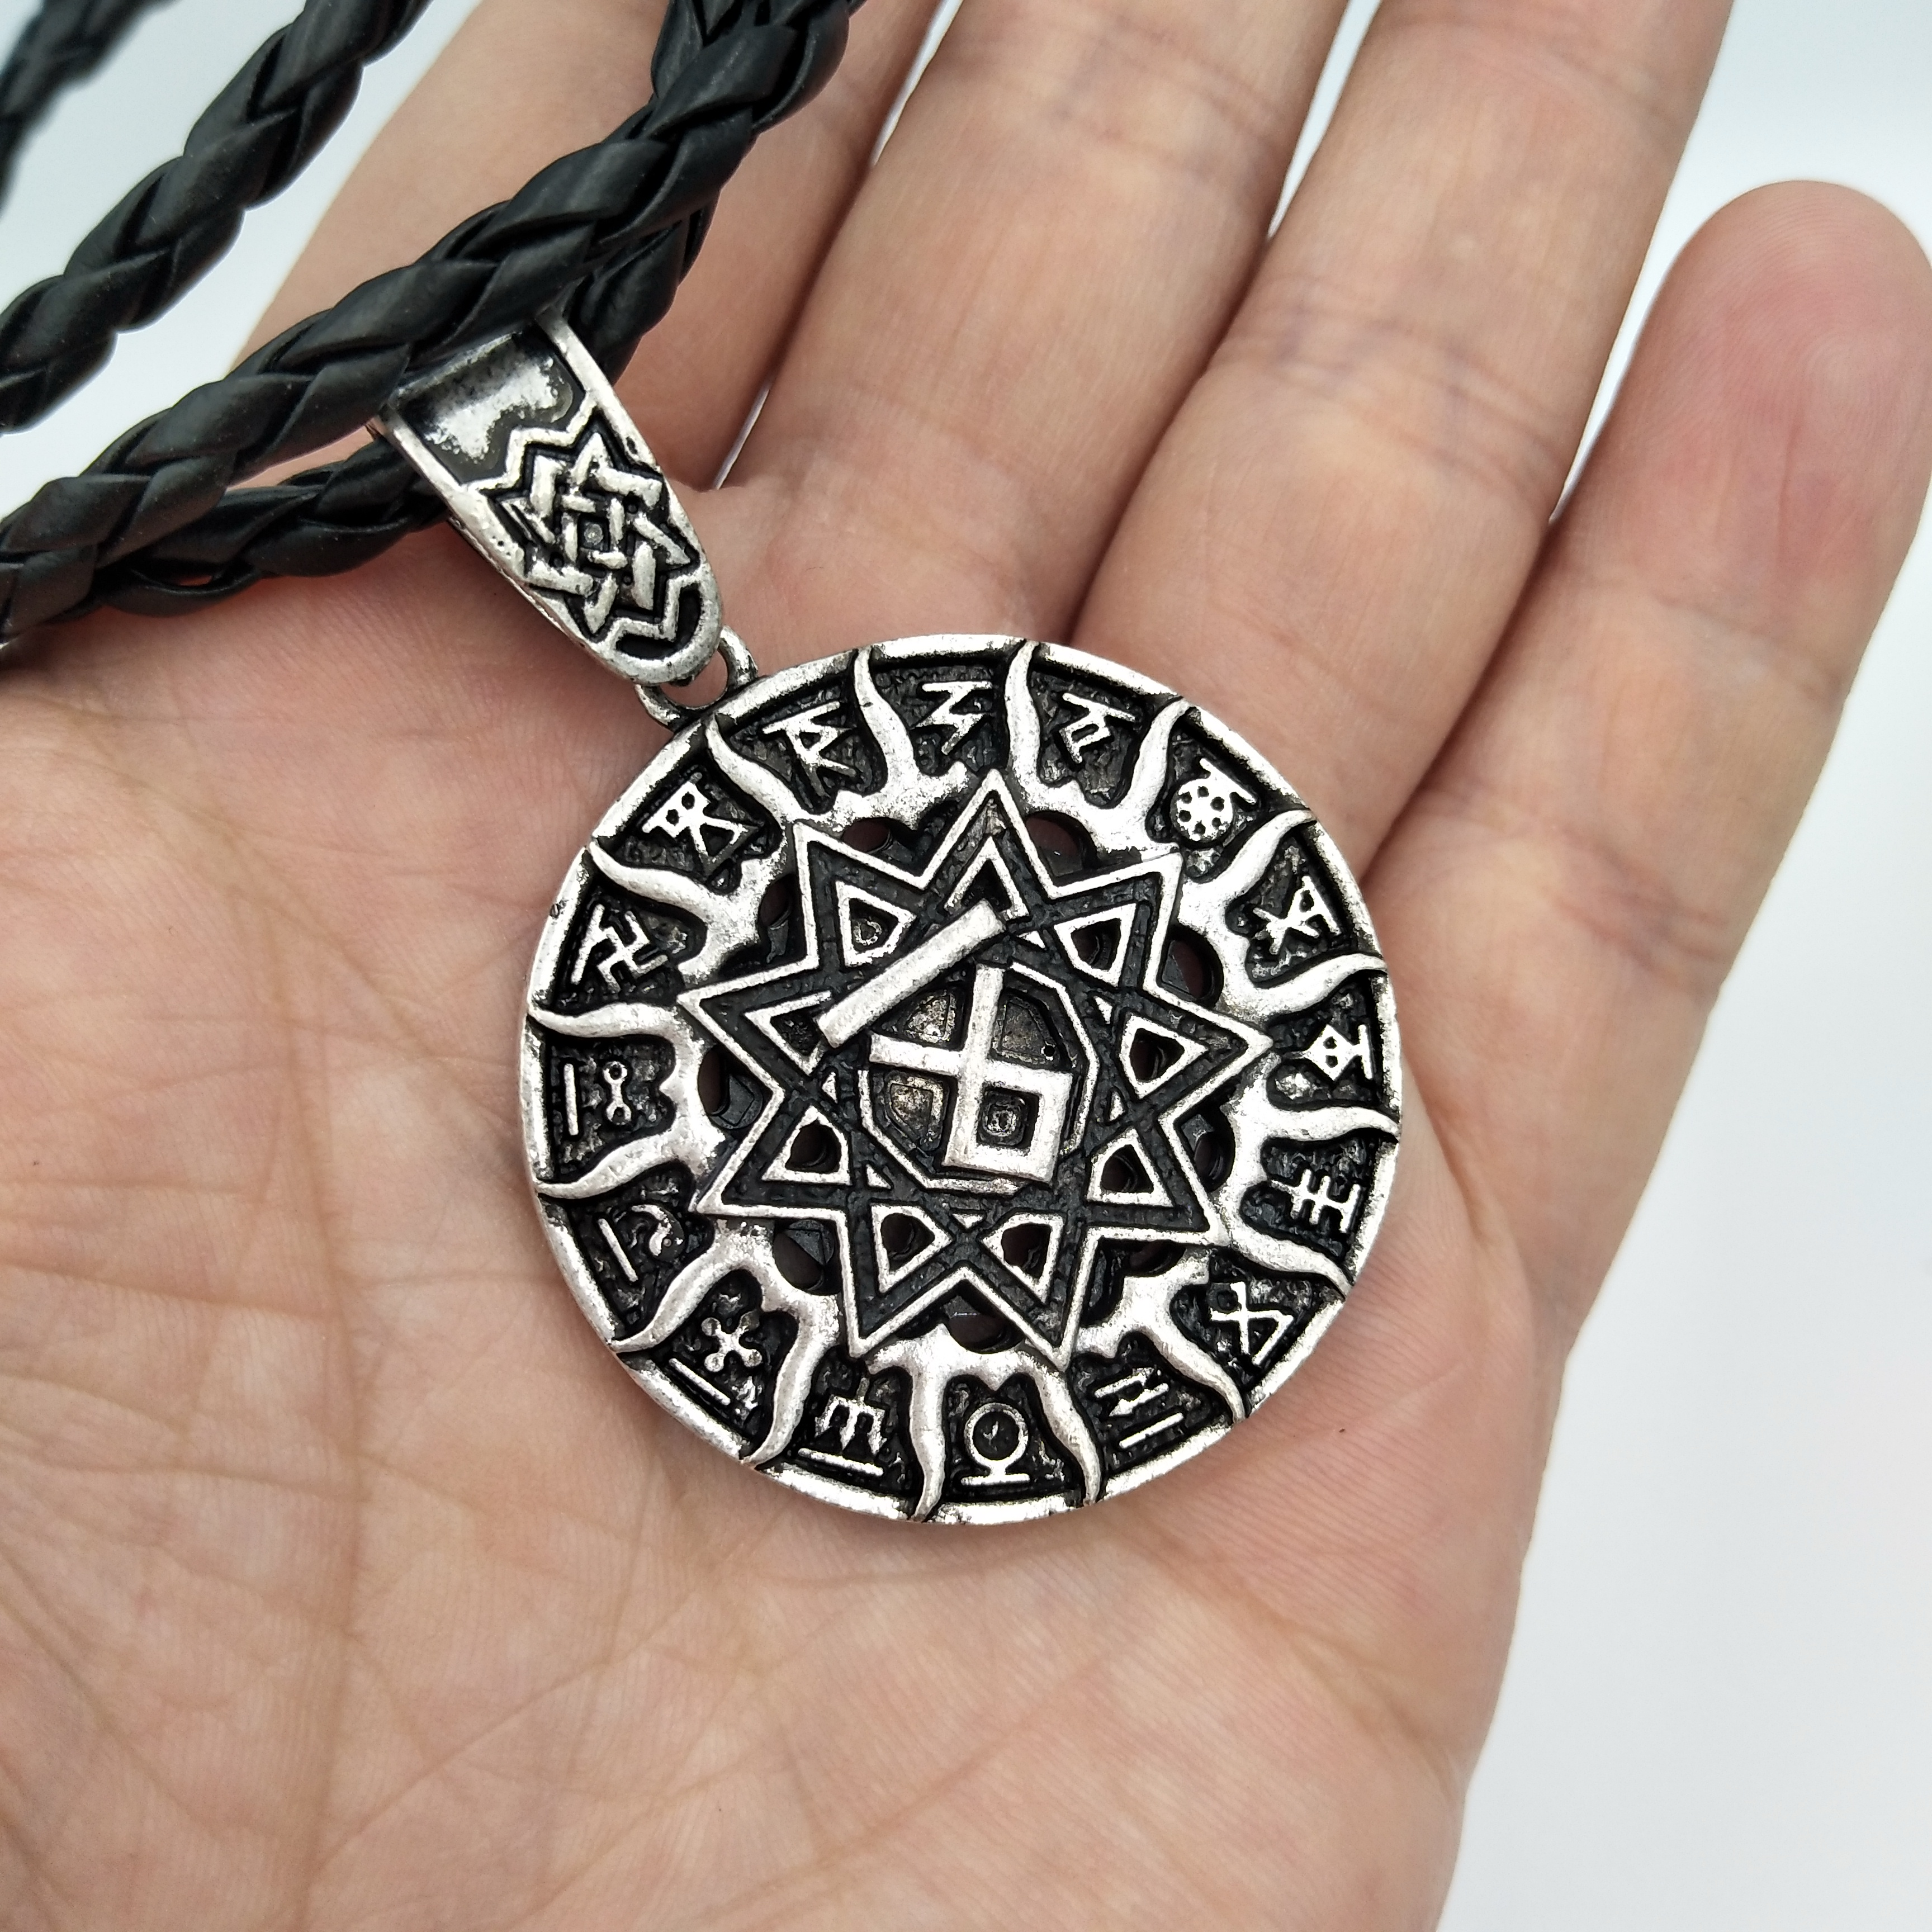 Stainless Steel Pendant Slavonic Axe with Black Suns Rune Odin Thor Necklace